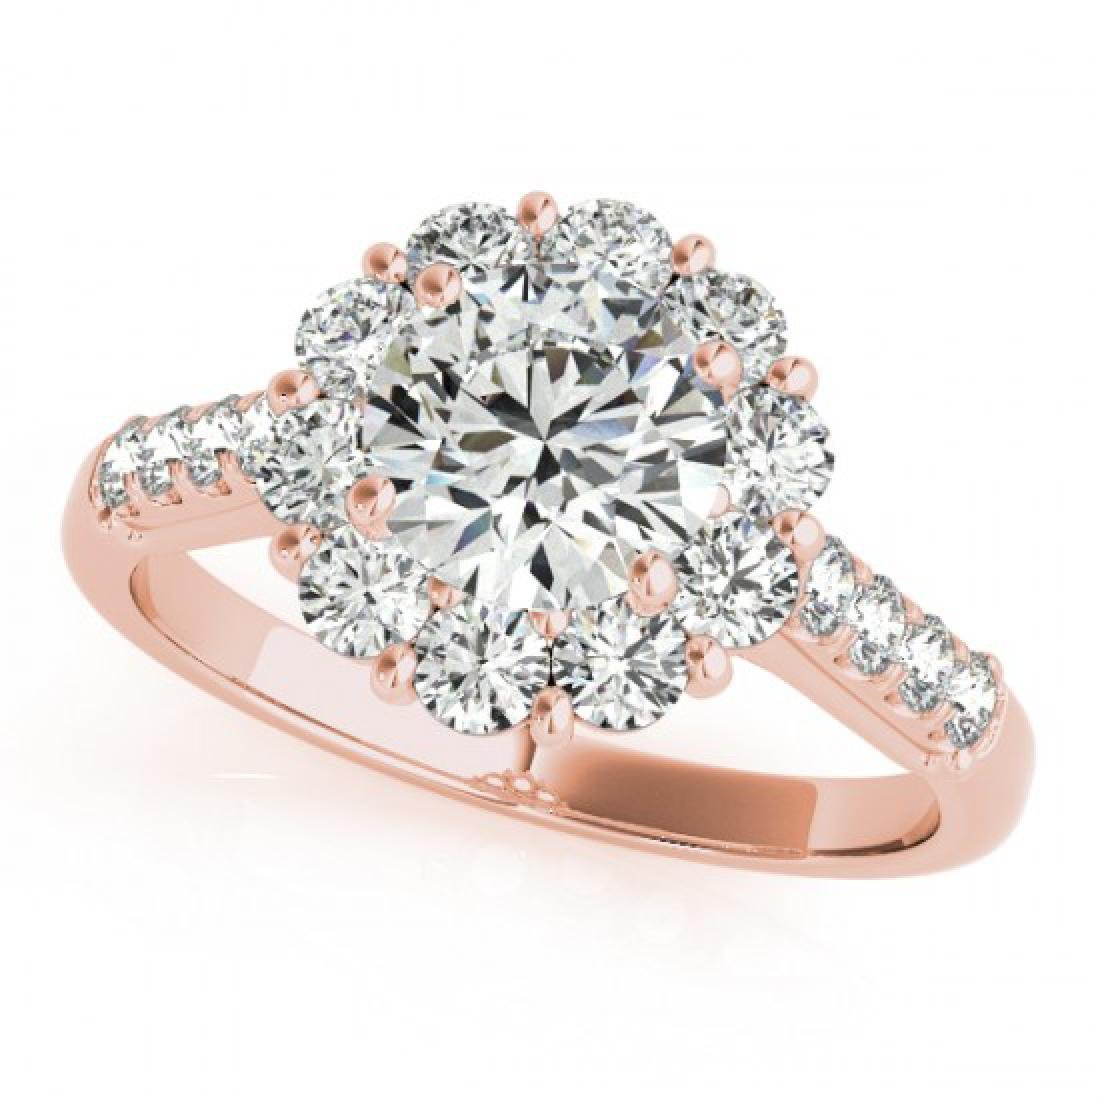 2 CTW Certified VS/SI Diamond Solitaire Halo Ring 14K